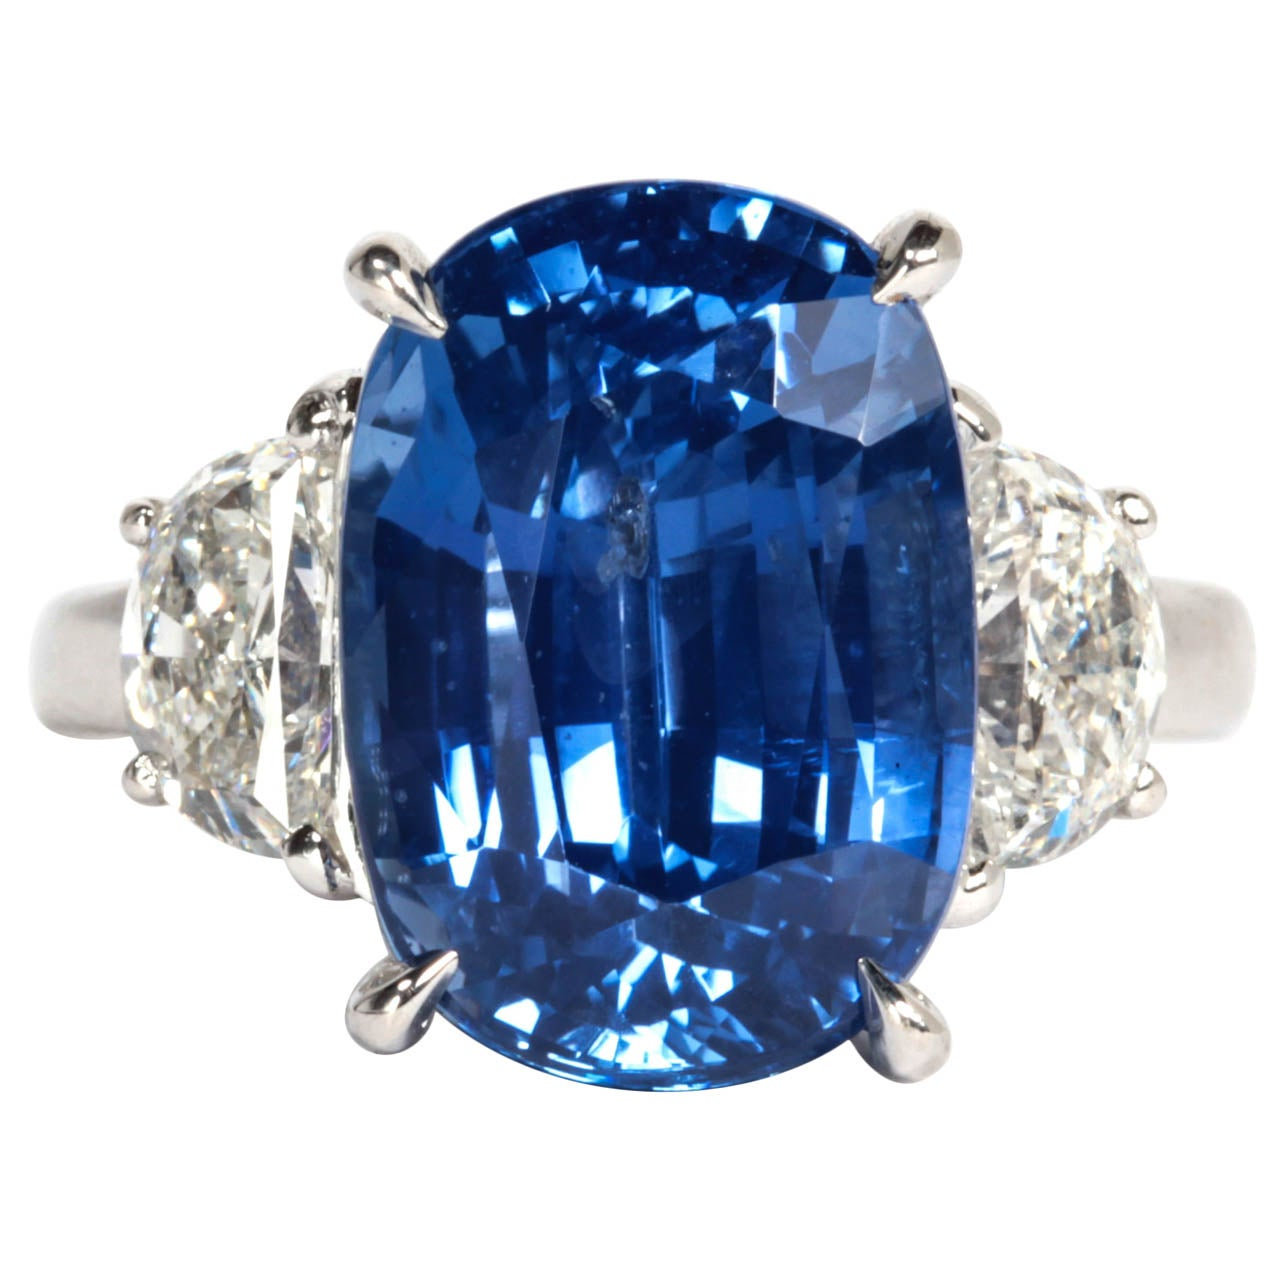 Certified Natural No Heat 11.51 carat Cushion cut Sapphire and Diamond Ring